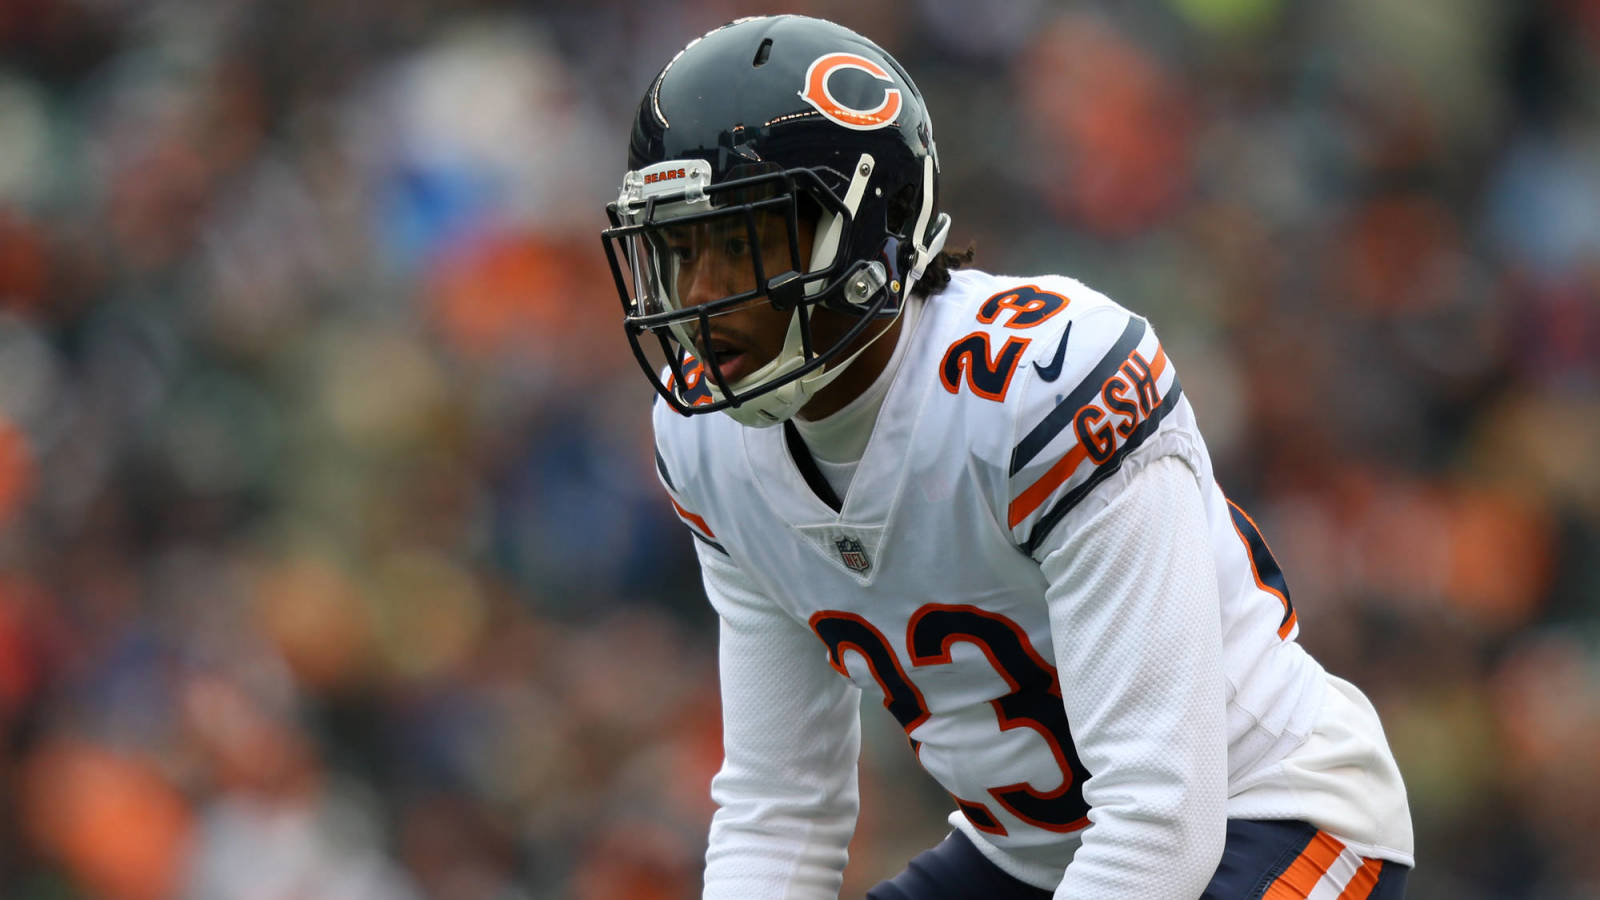 Kyle Fuller likely to remain with Chicago Bears after all